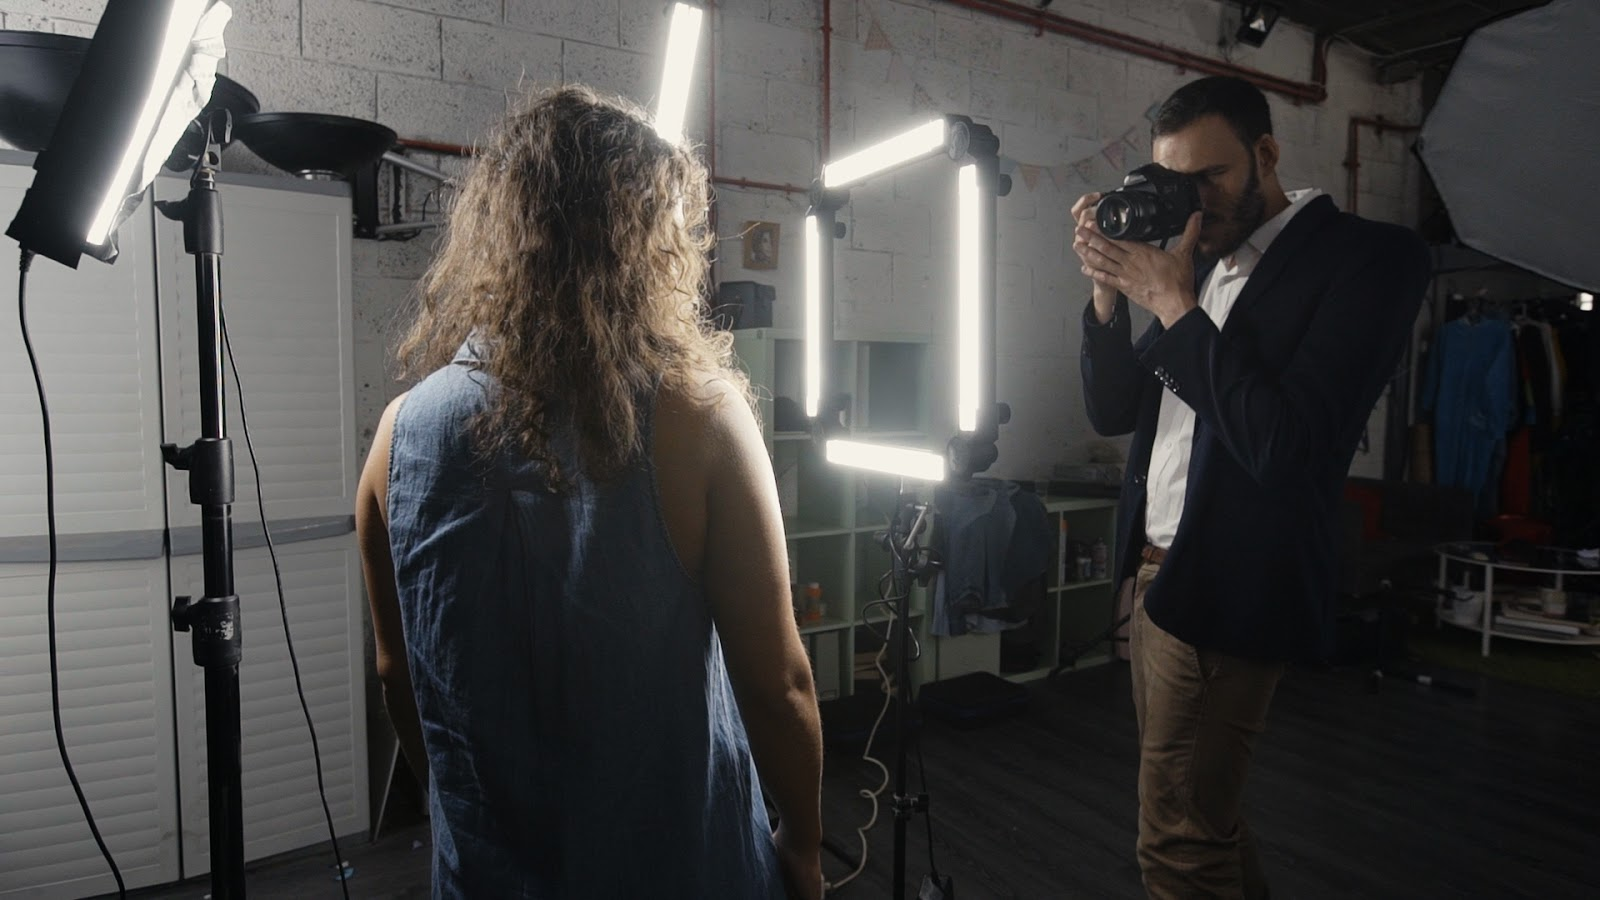 Spekular: the Swiss army knife of LED lighting for photo and video